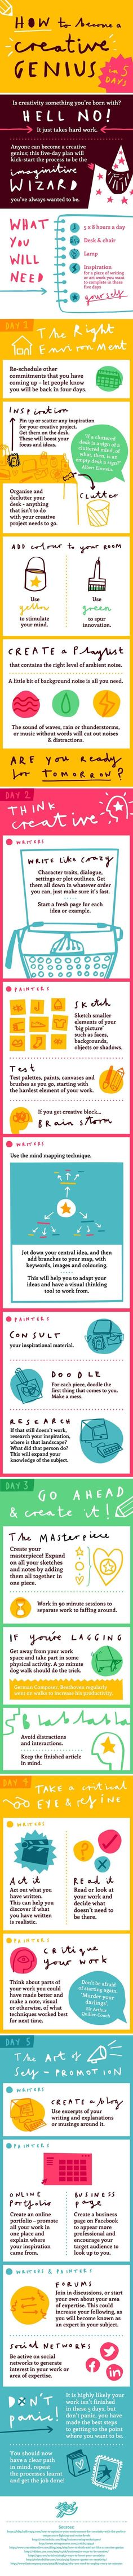 Discover new TIPS! Discover new TIPS! Published by: Zippi Original source: here TIPS FOR: creativity, health, personal development